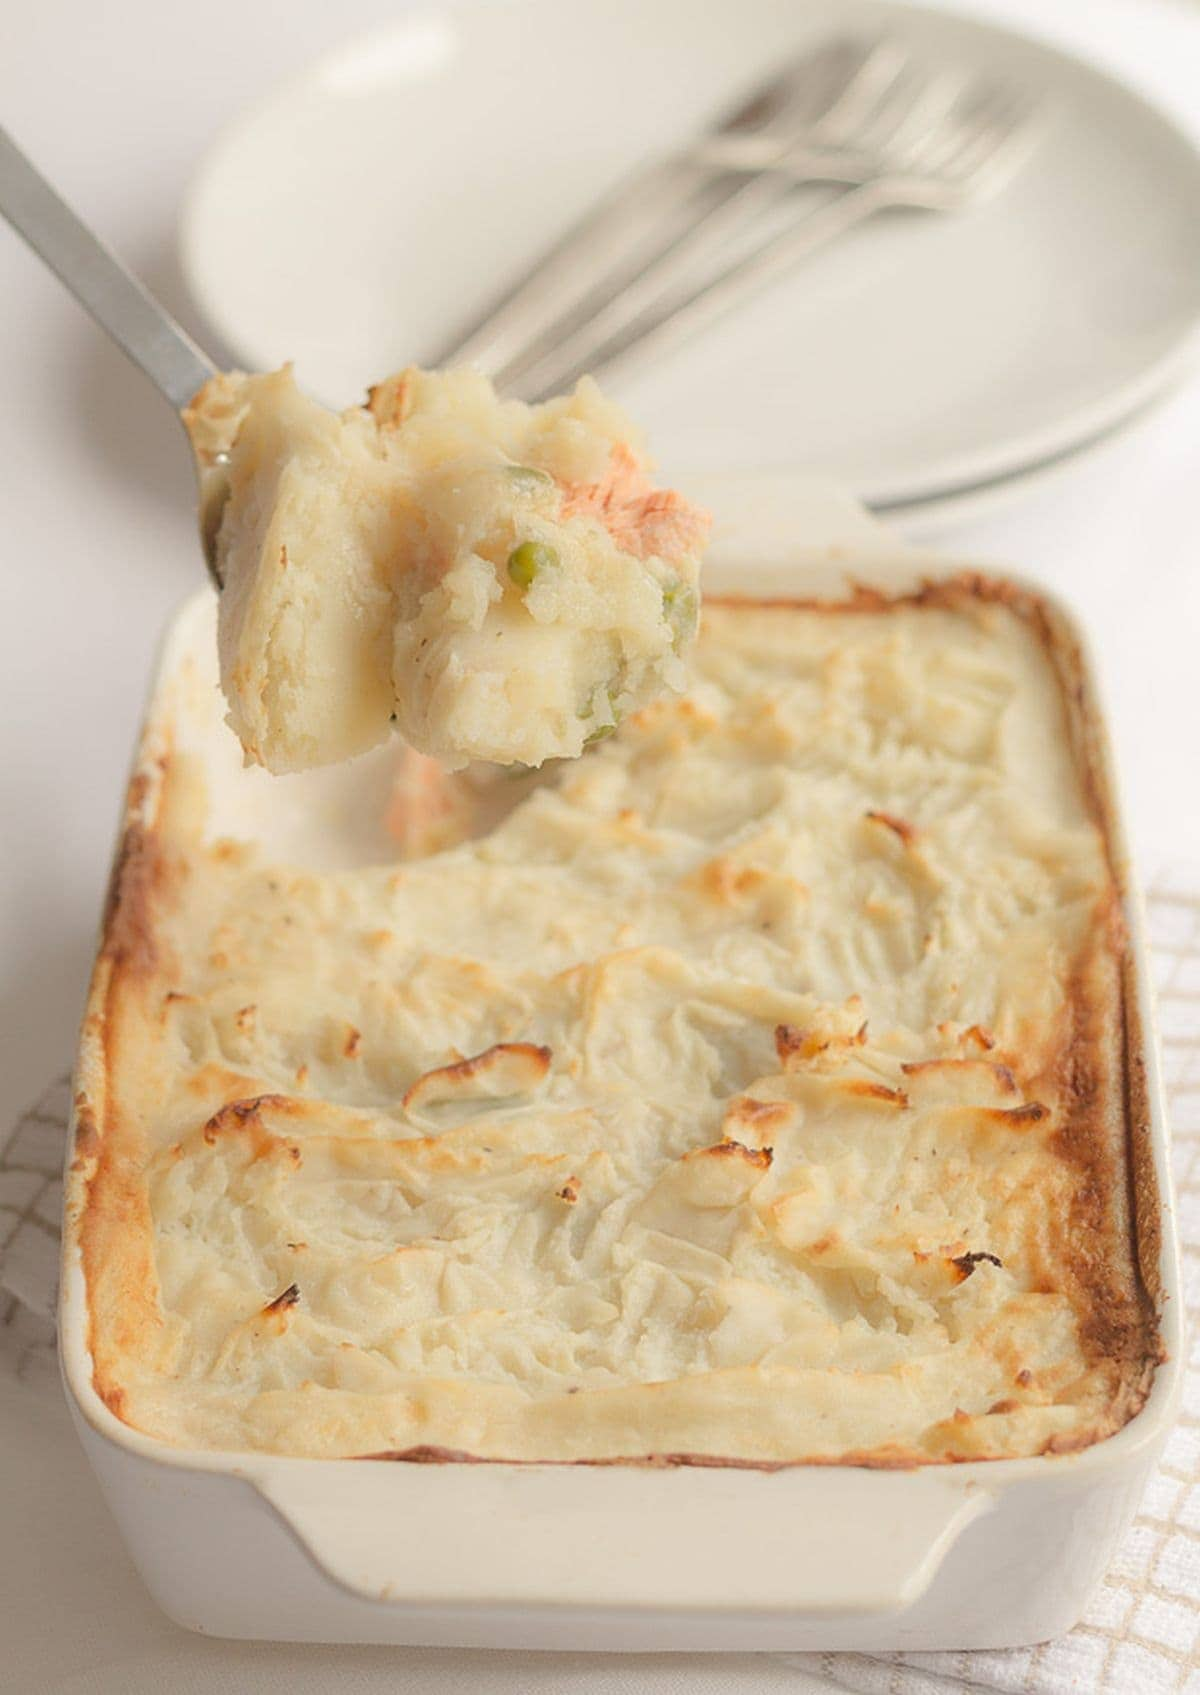 Easy fish pie just taken out of the oven with a spoon lifting a portion out.